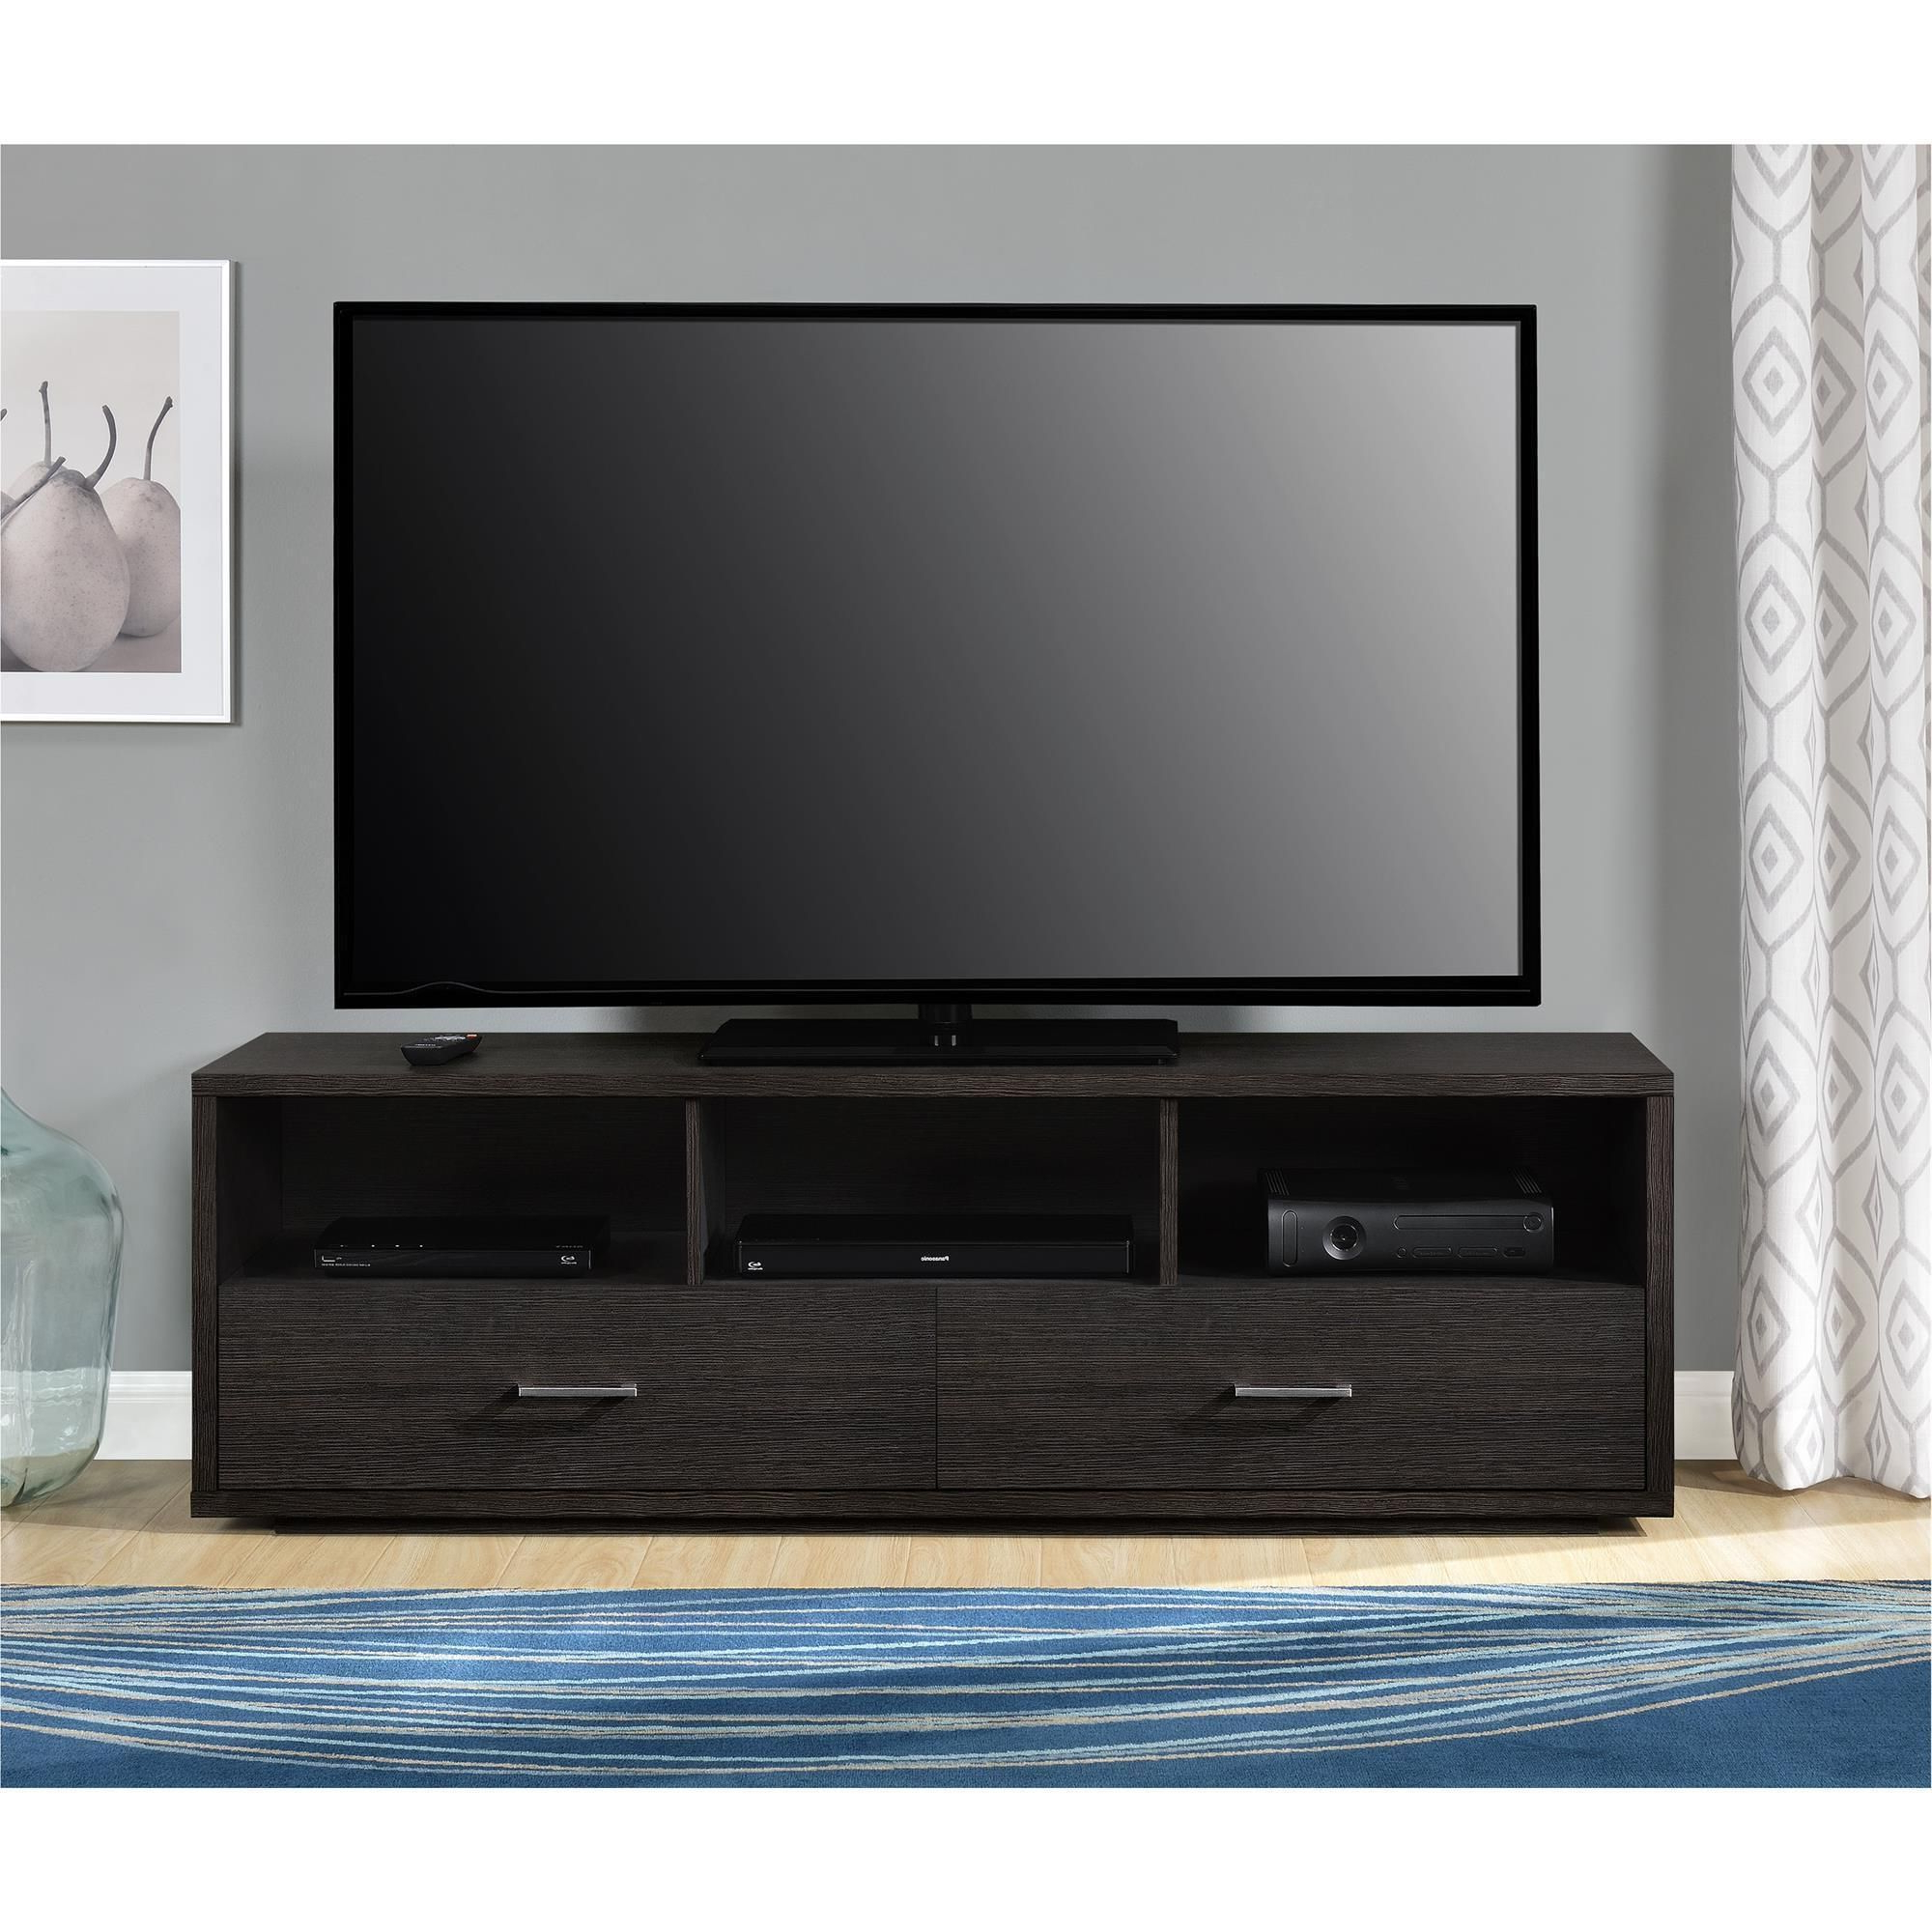 Favorite The Altra Clark 70 Inch Tv Stand Helps To Make A Statement In Your For Tv Stands For Large Tvs (View 15 of 20)